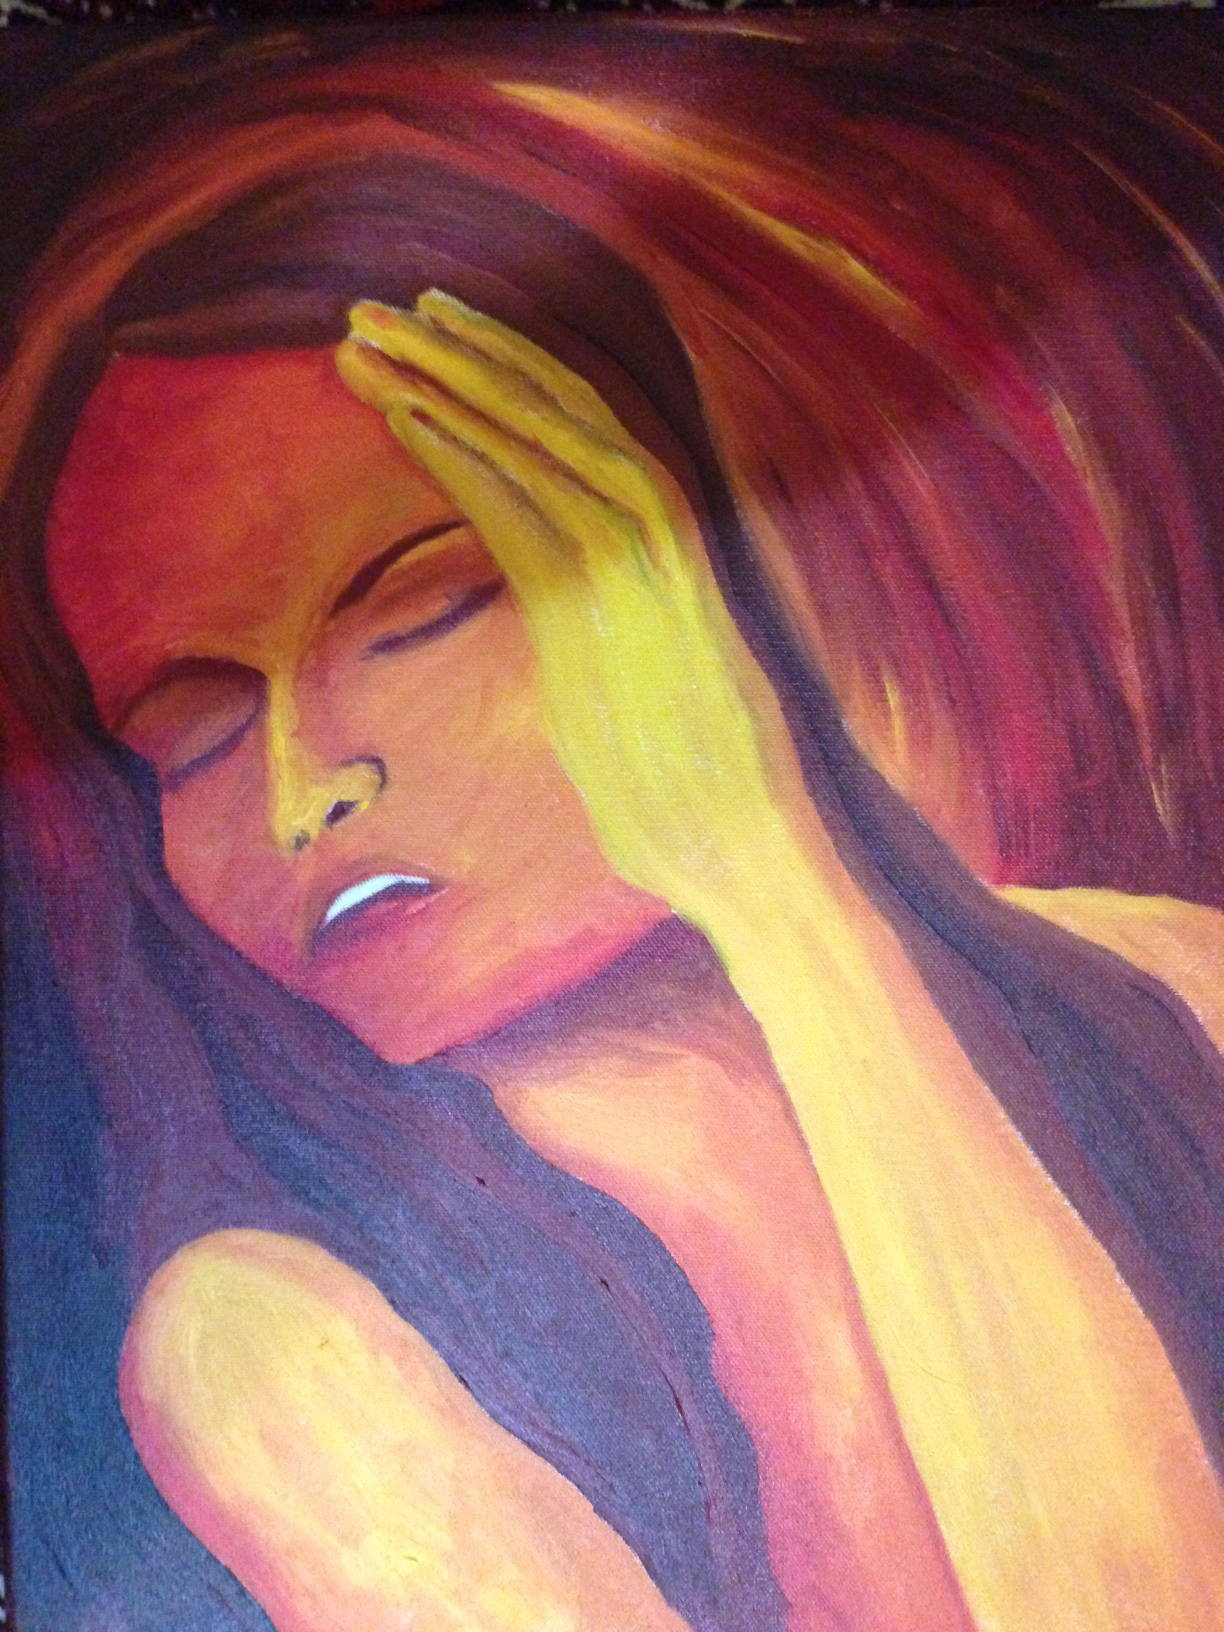 Oil painting of a woman holding her head, frowning